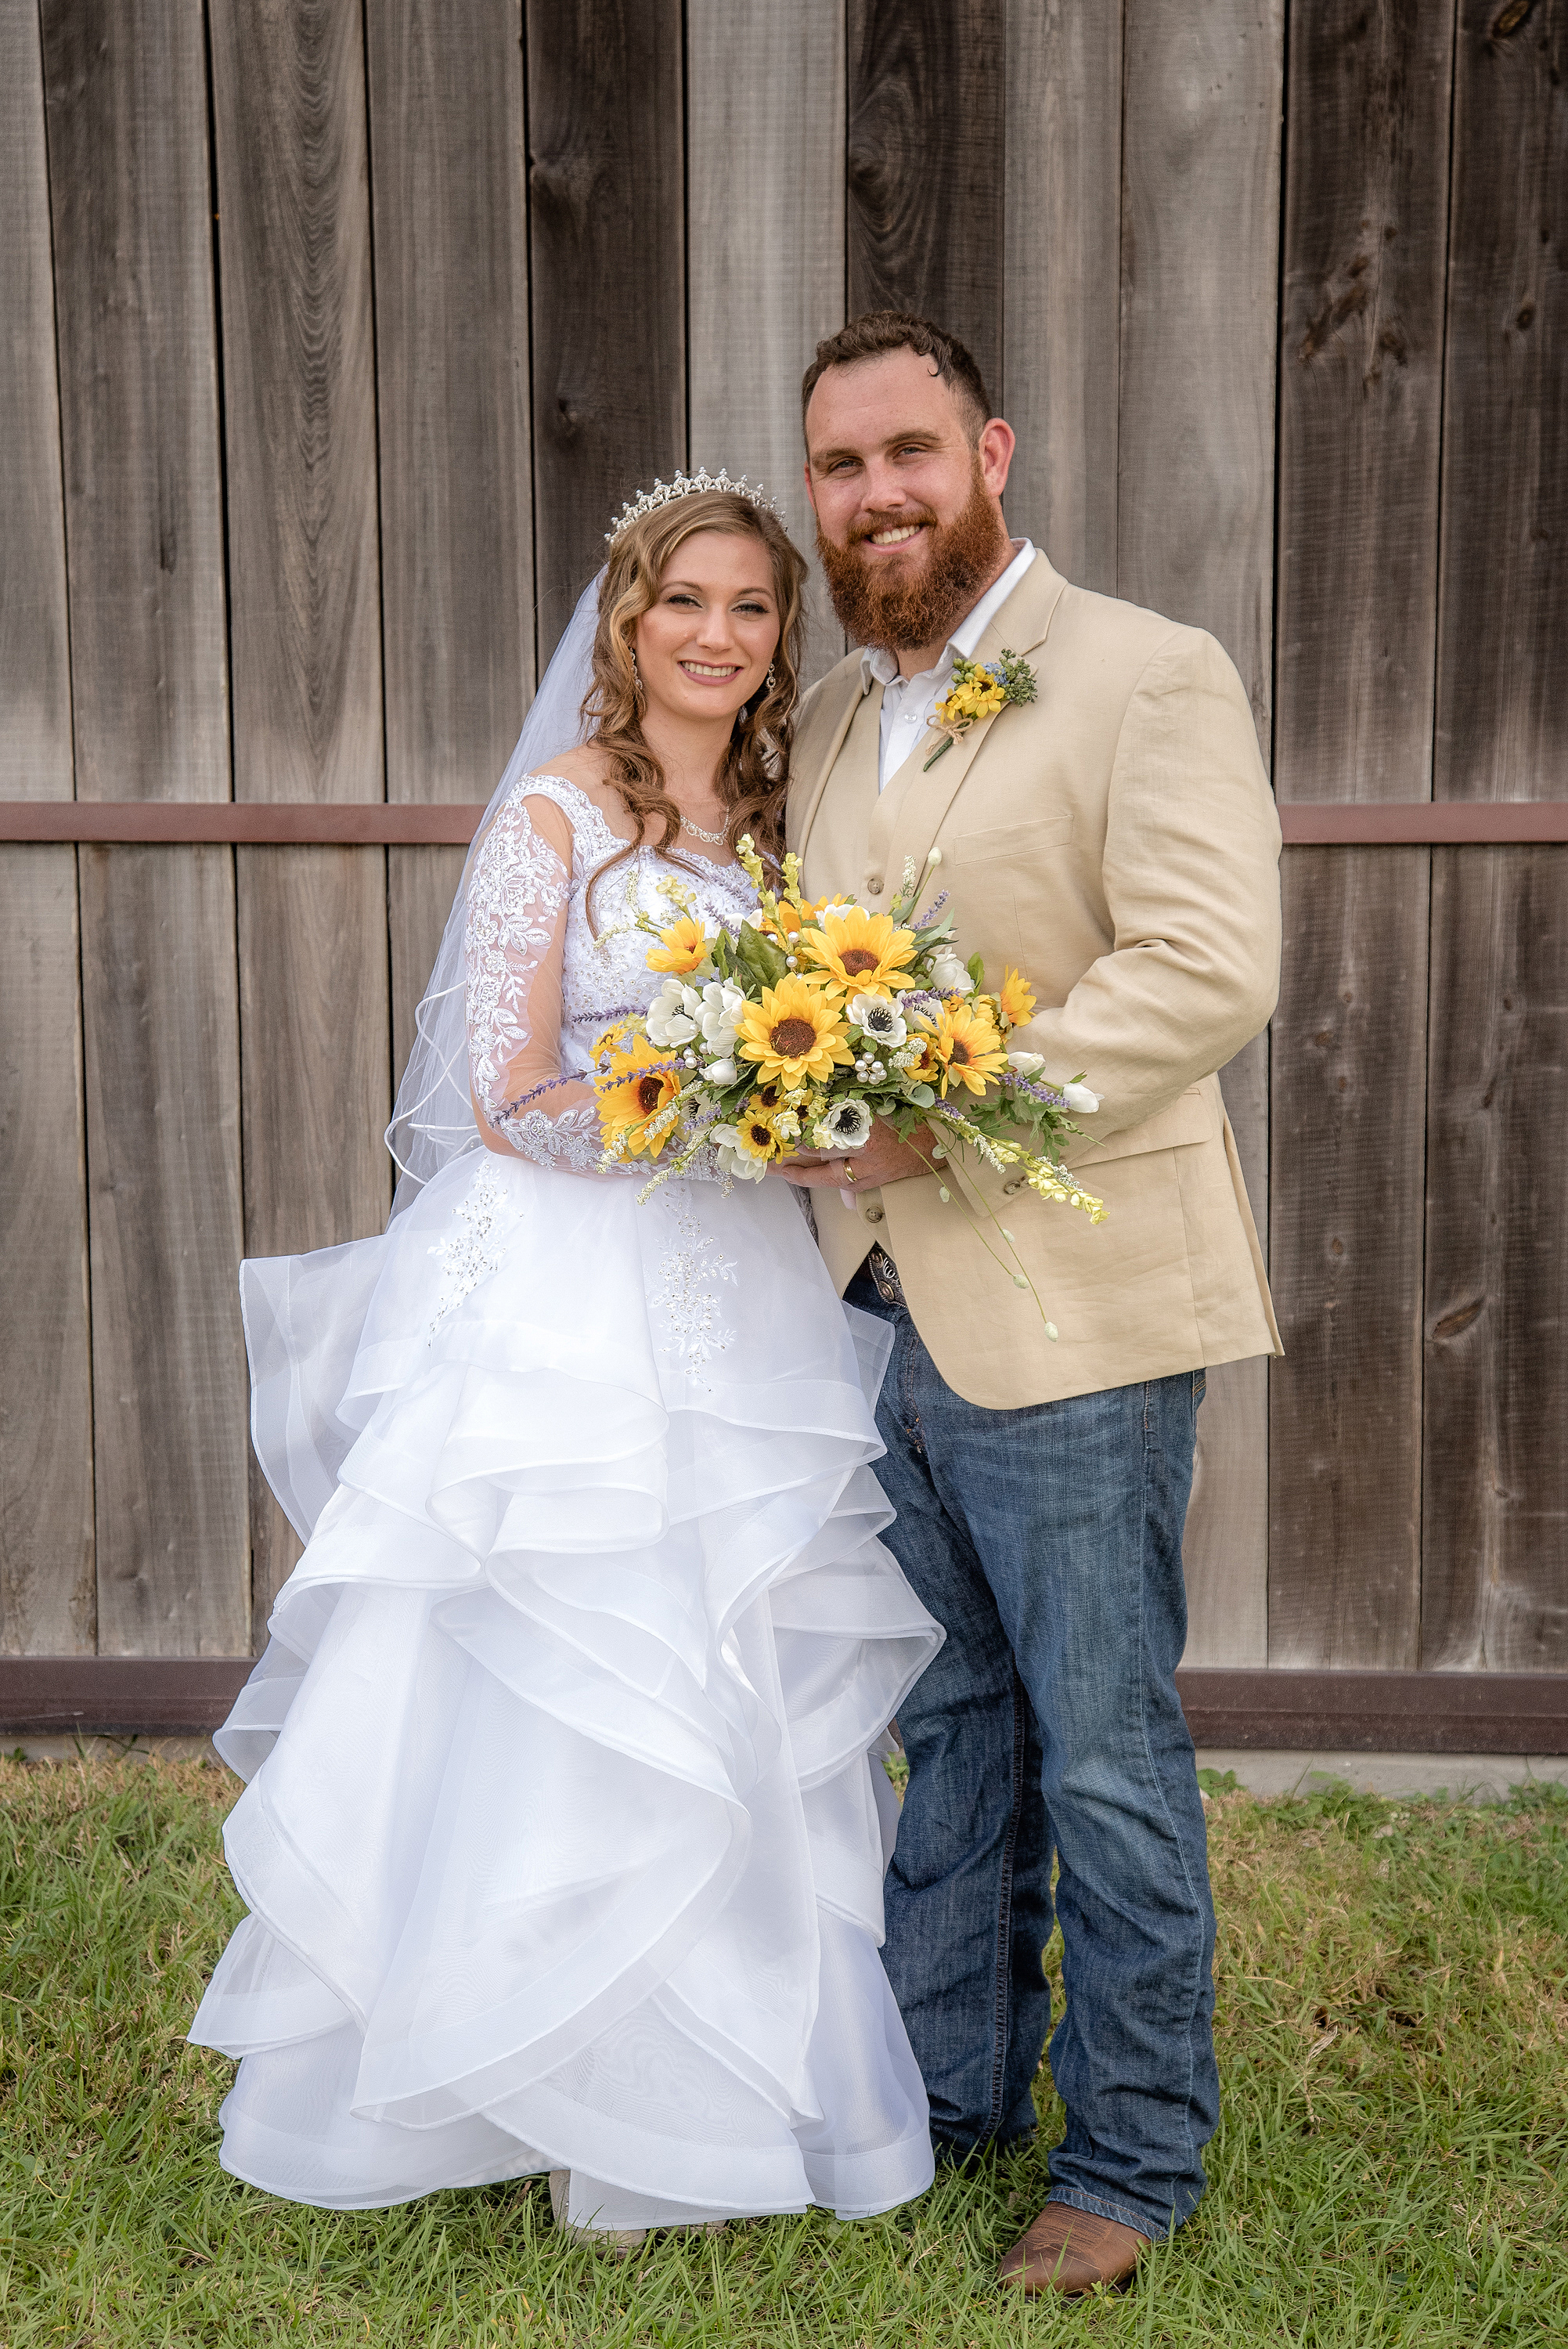 Mr. & Mrs. Downey - April 6, 2019 - S bar S barn Ranch, Lakeland, FL